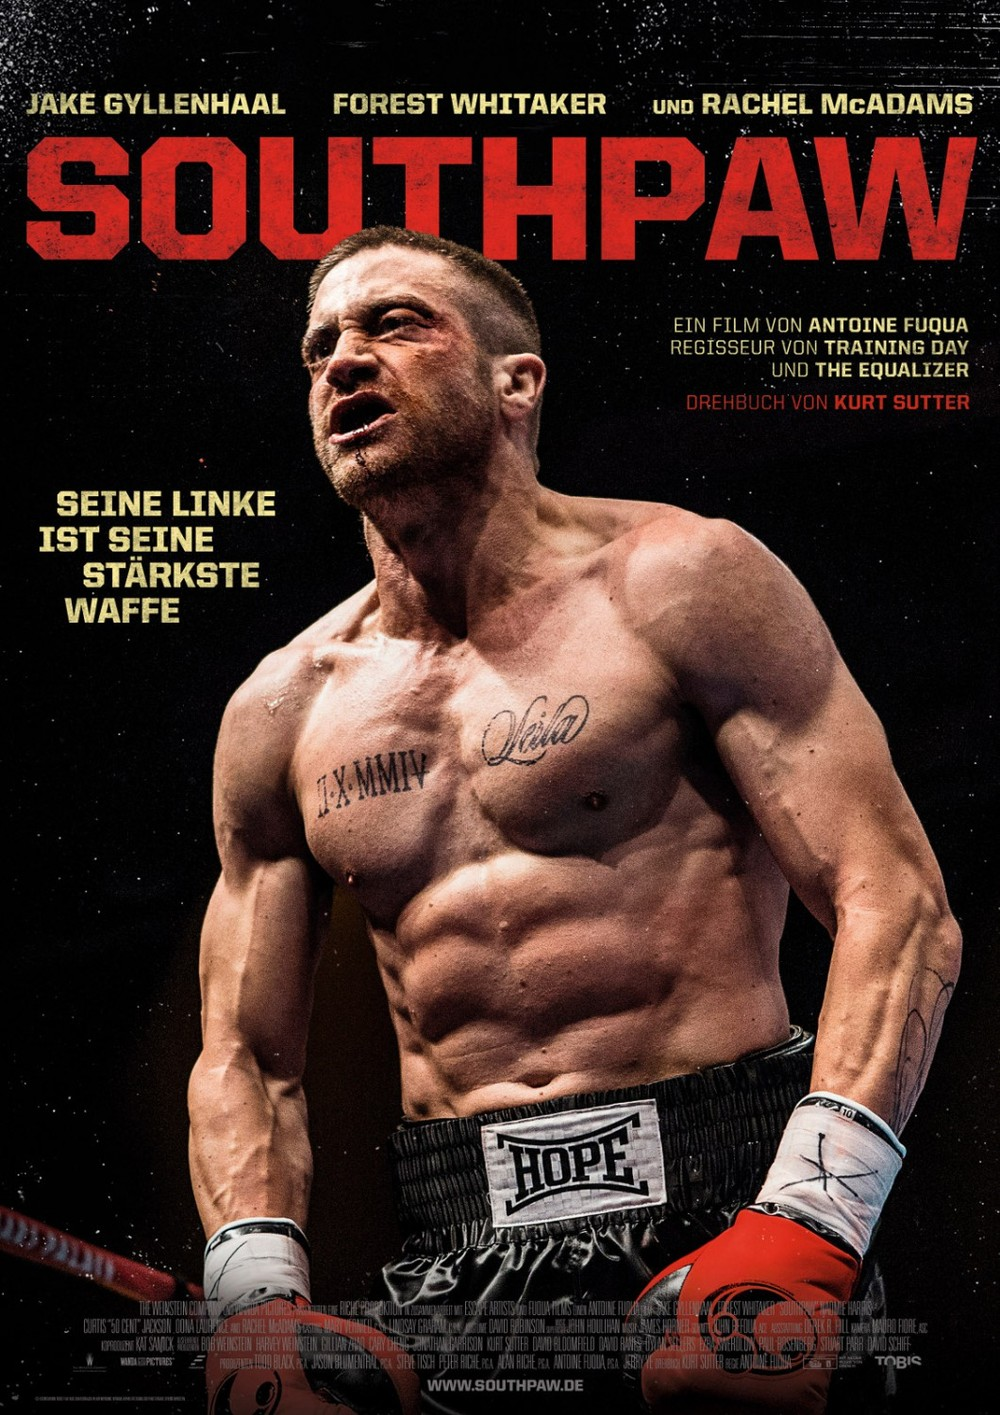 Southpaw release date in Perth